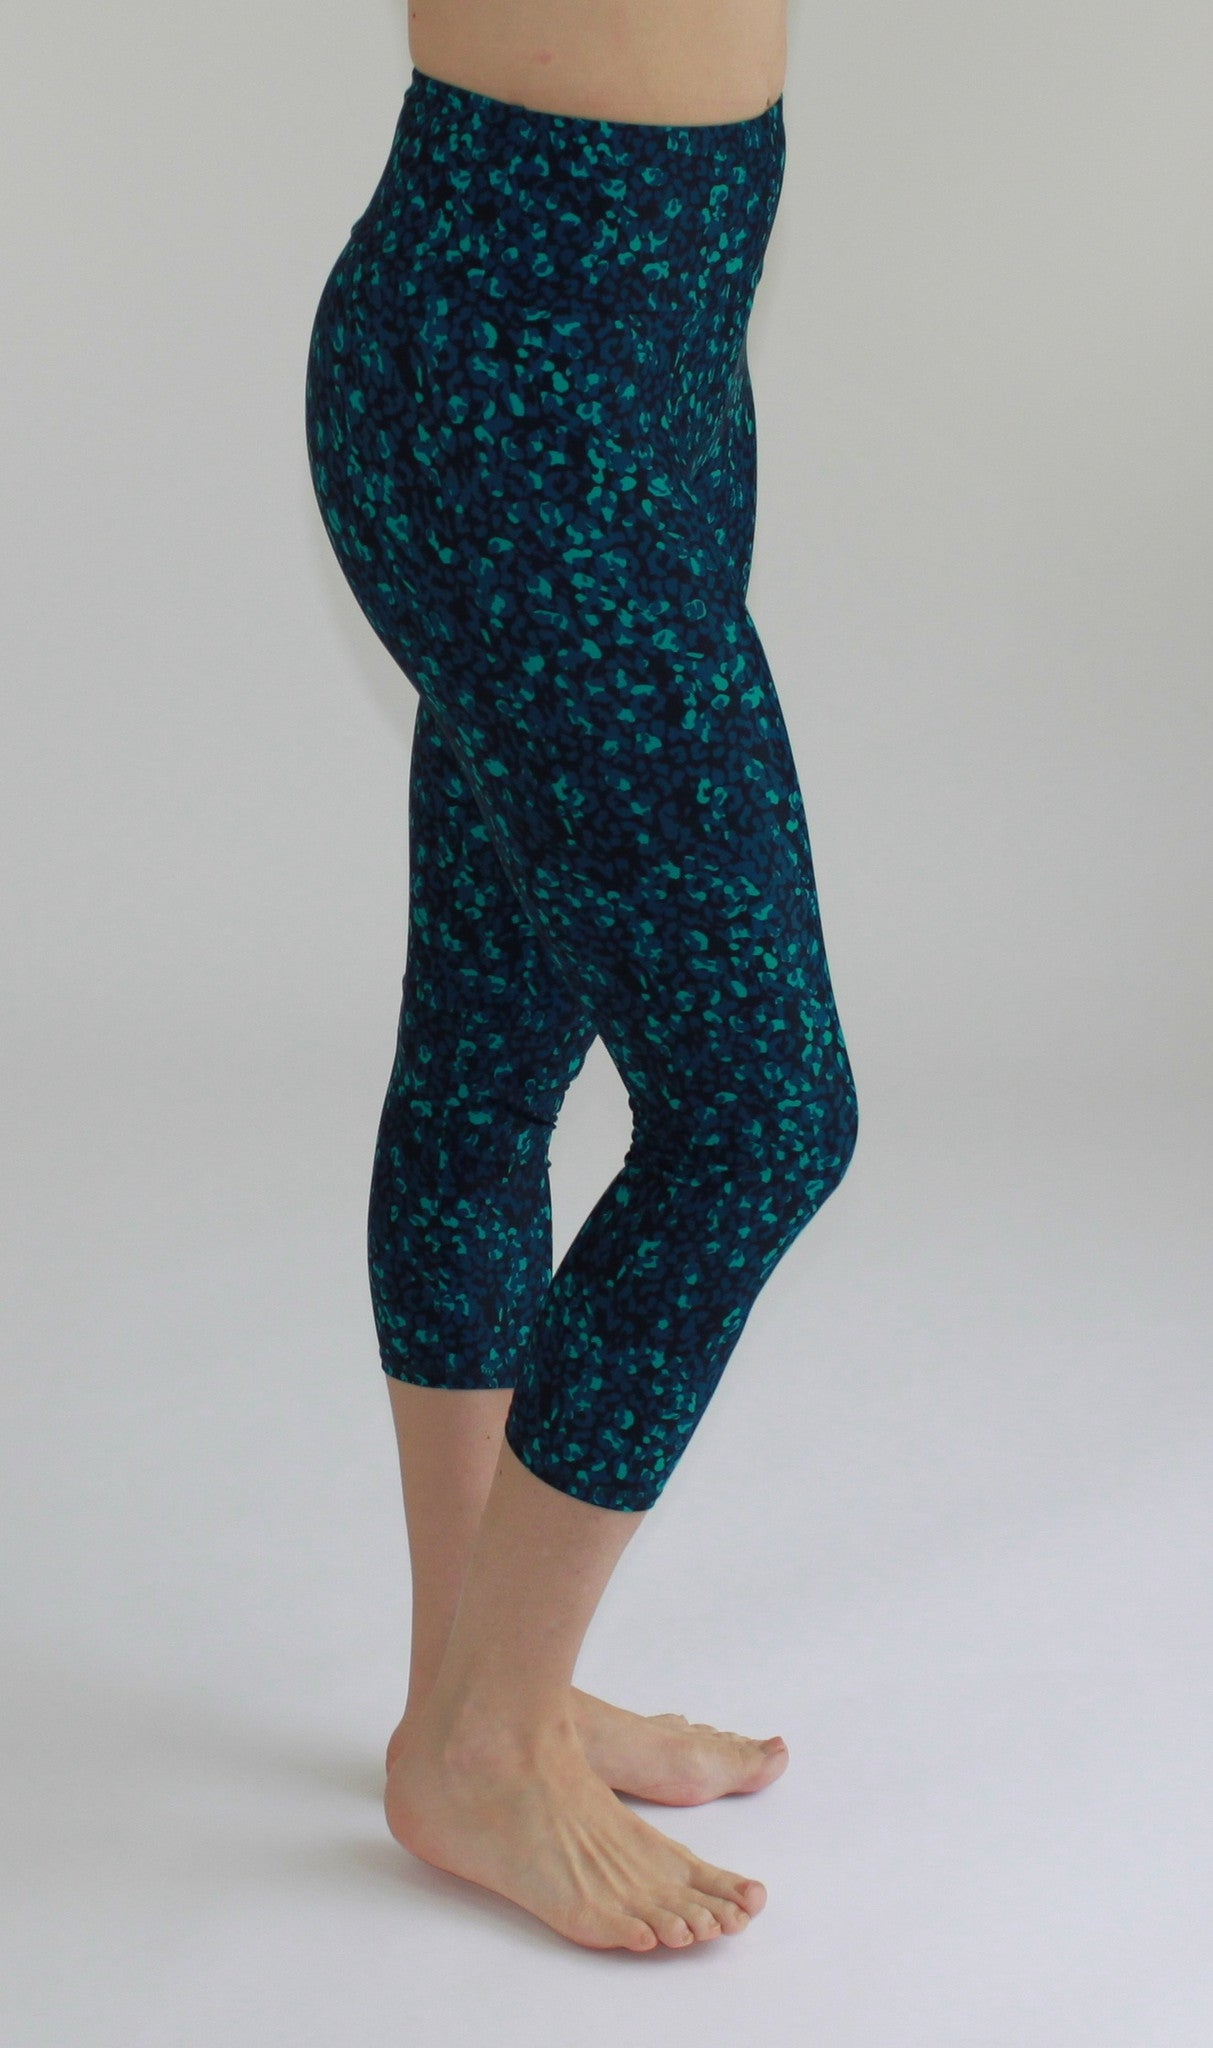 High-Waisted cropped Leggings Rain Forest Print